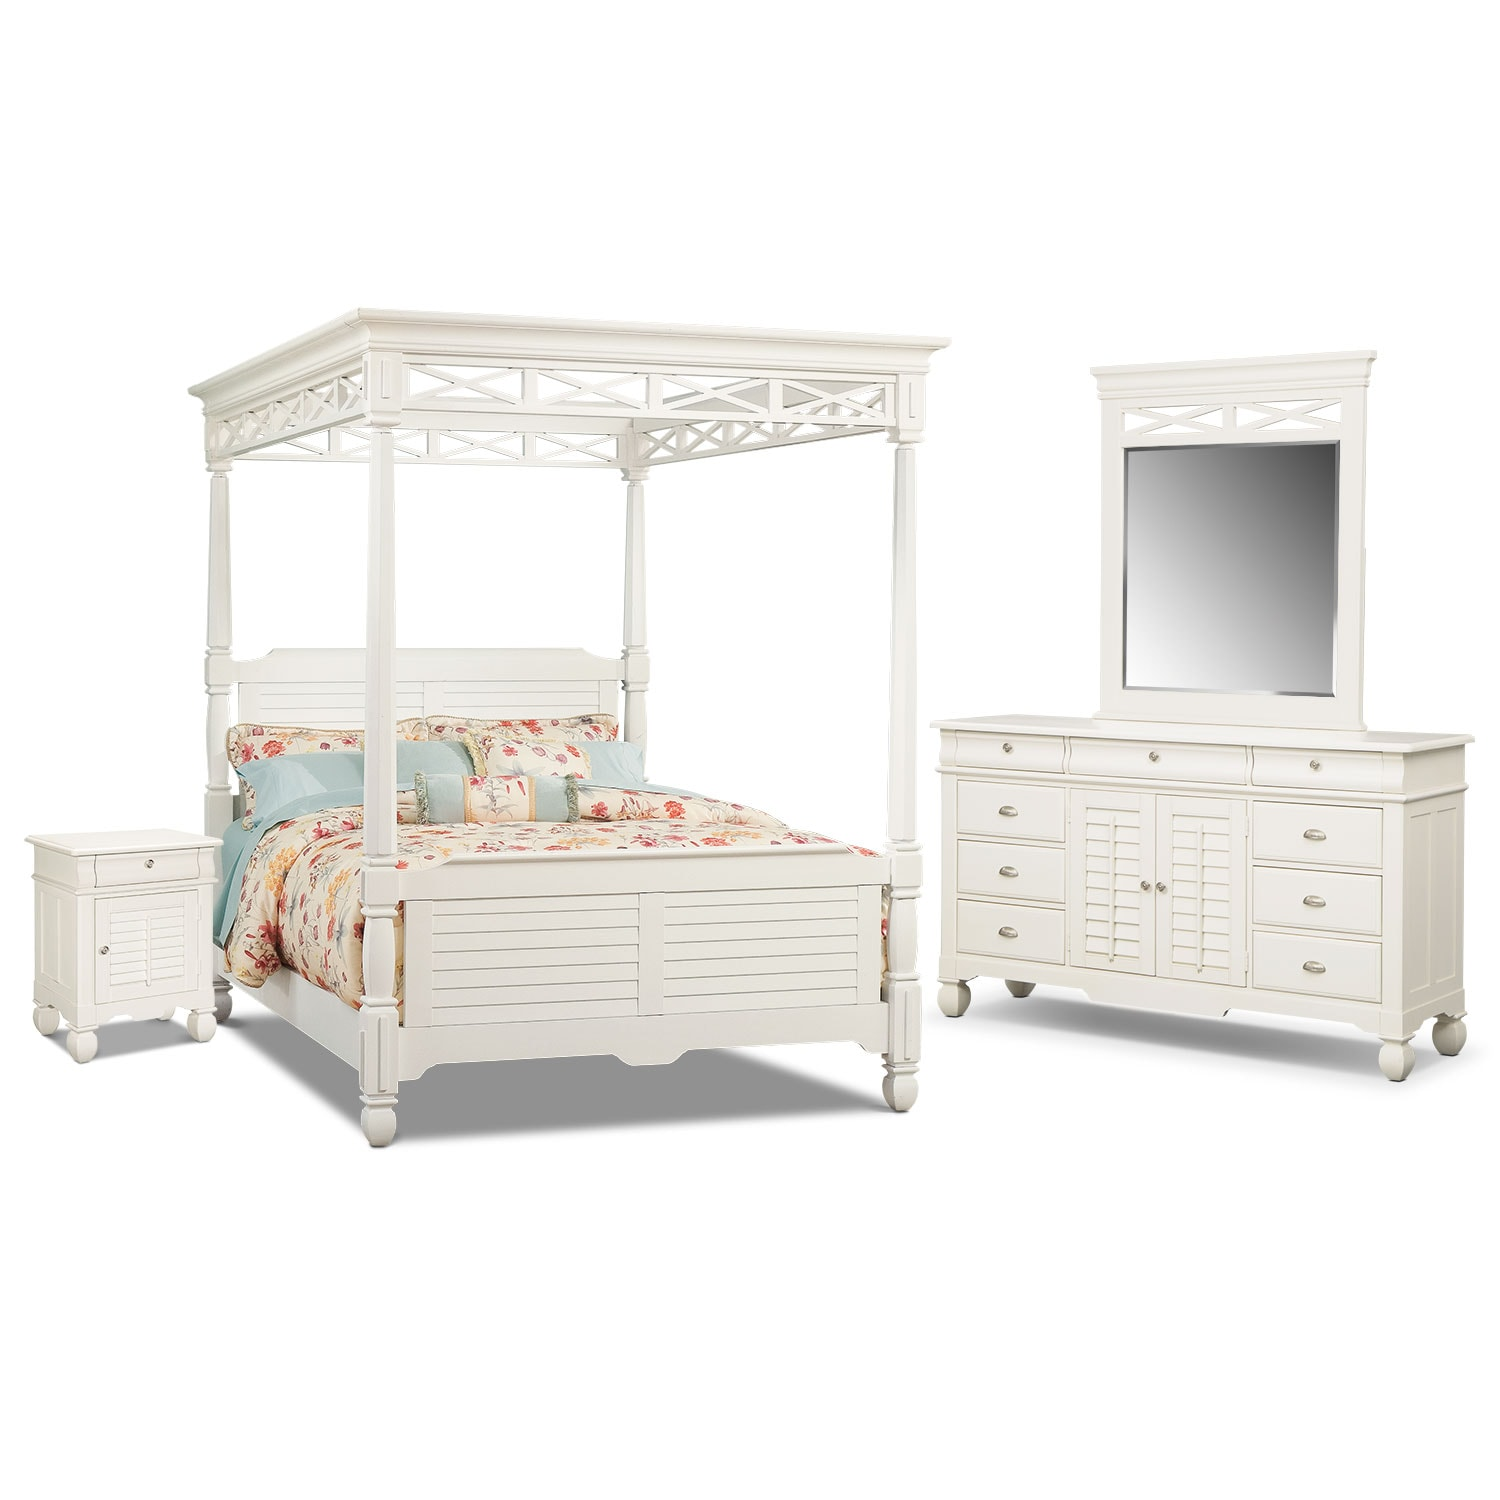 Bedroom Furniture - Plantation Cove 6-Piece King Canopy Bedroom Set with Door Nightstand - White